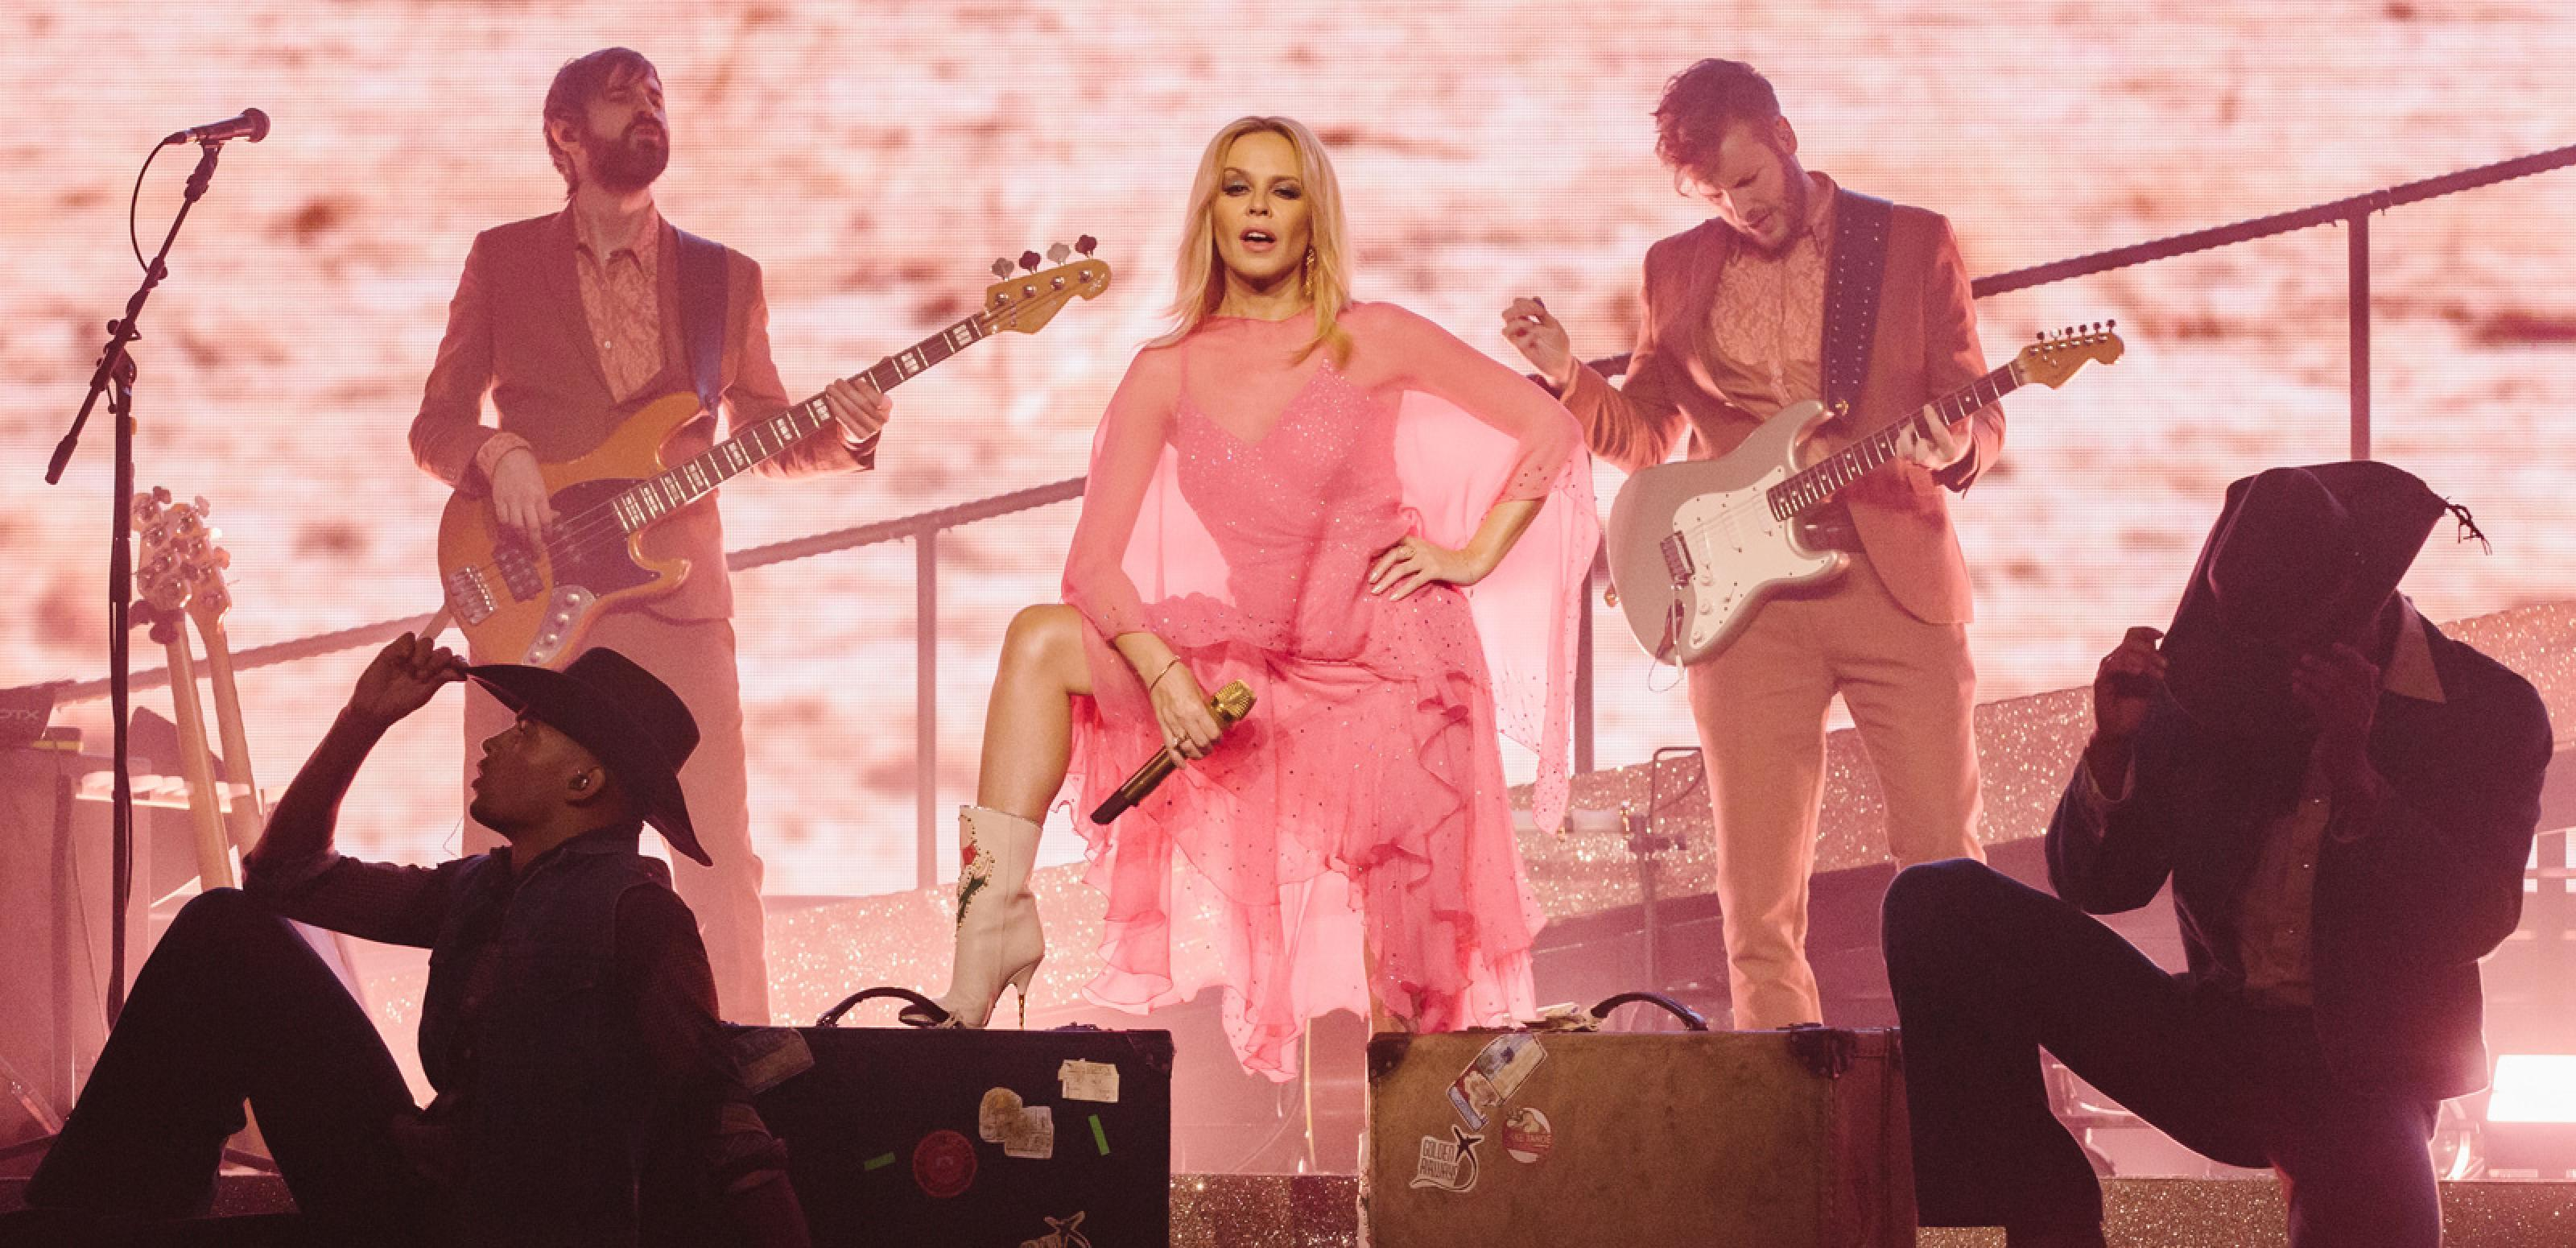 Kylie Minogue is standing on a stage with a foot up on an amplifier in a power pose. There are dancers in front of her and two musicians on stage with her playing guitar.